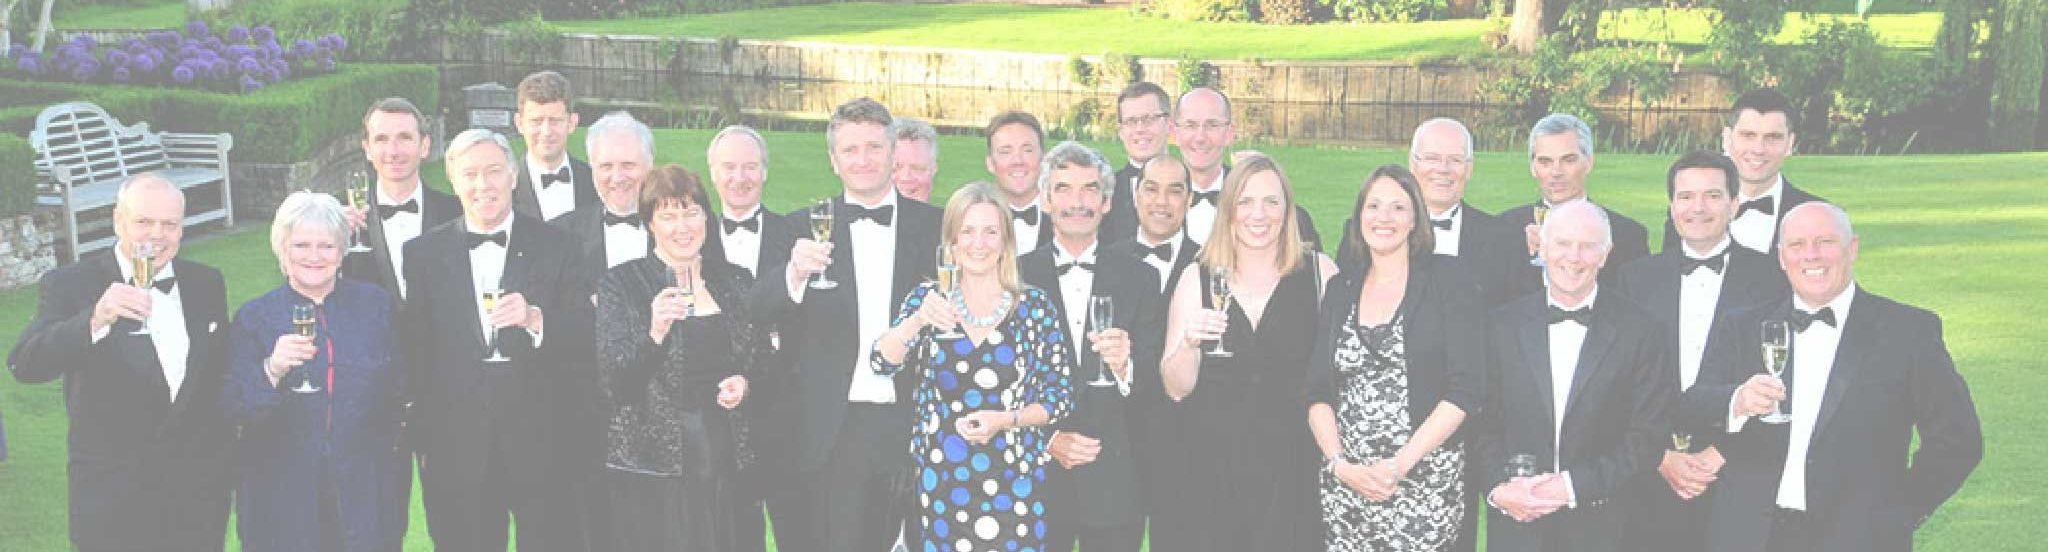 The firm celebrated 250 years